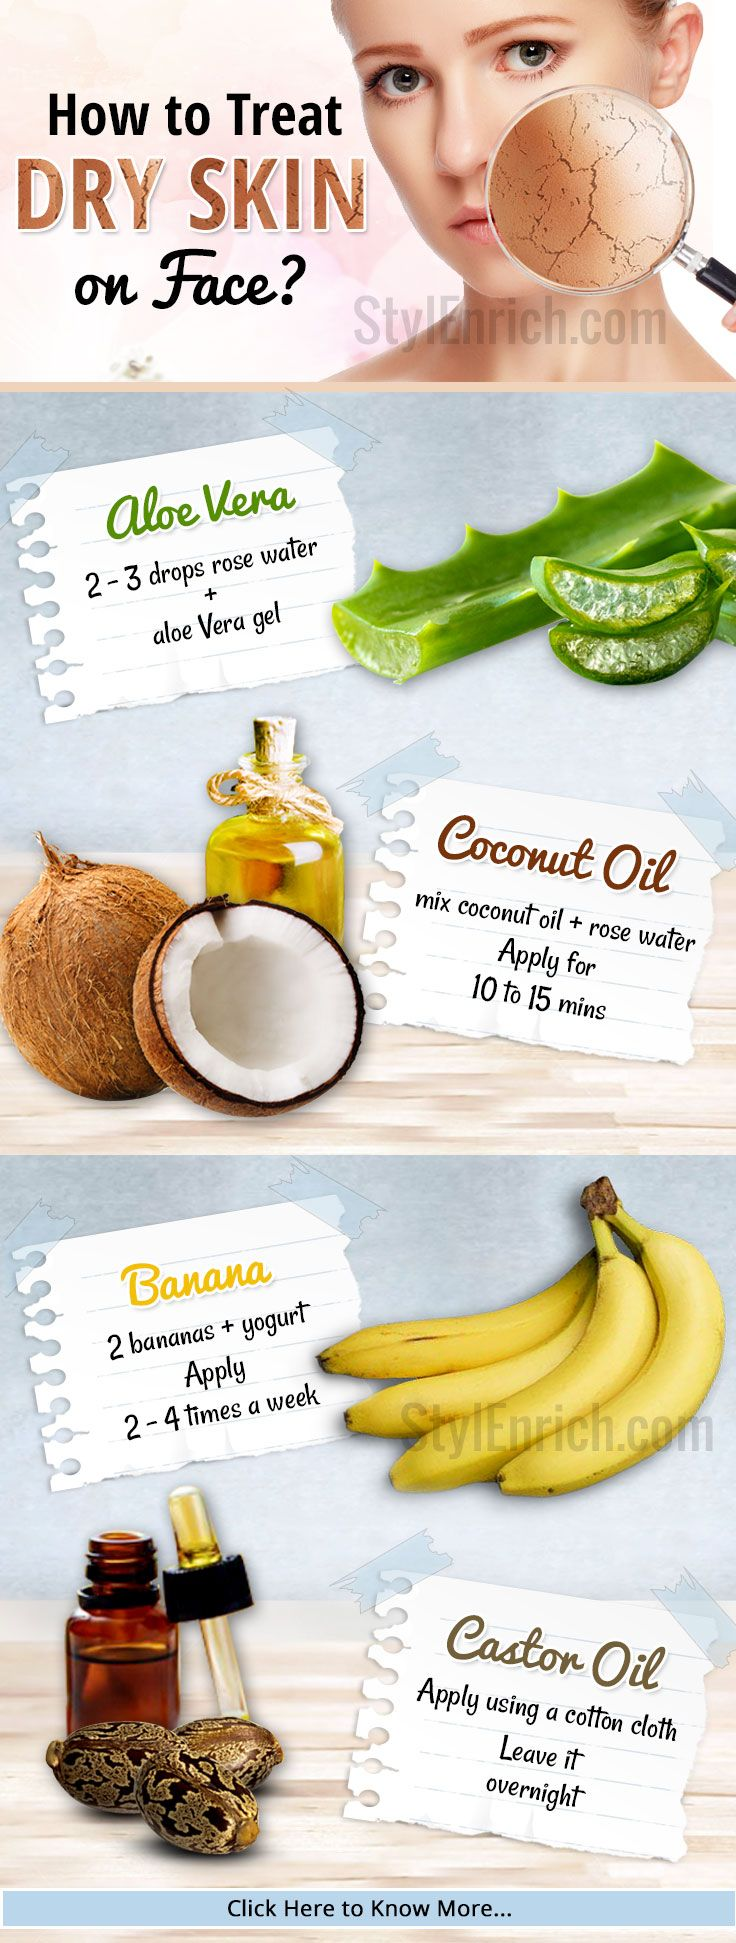 Dry Skin on Face  Try Some Home Remedies to Fight Dry Skin  Dry